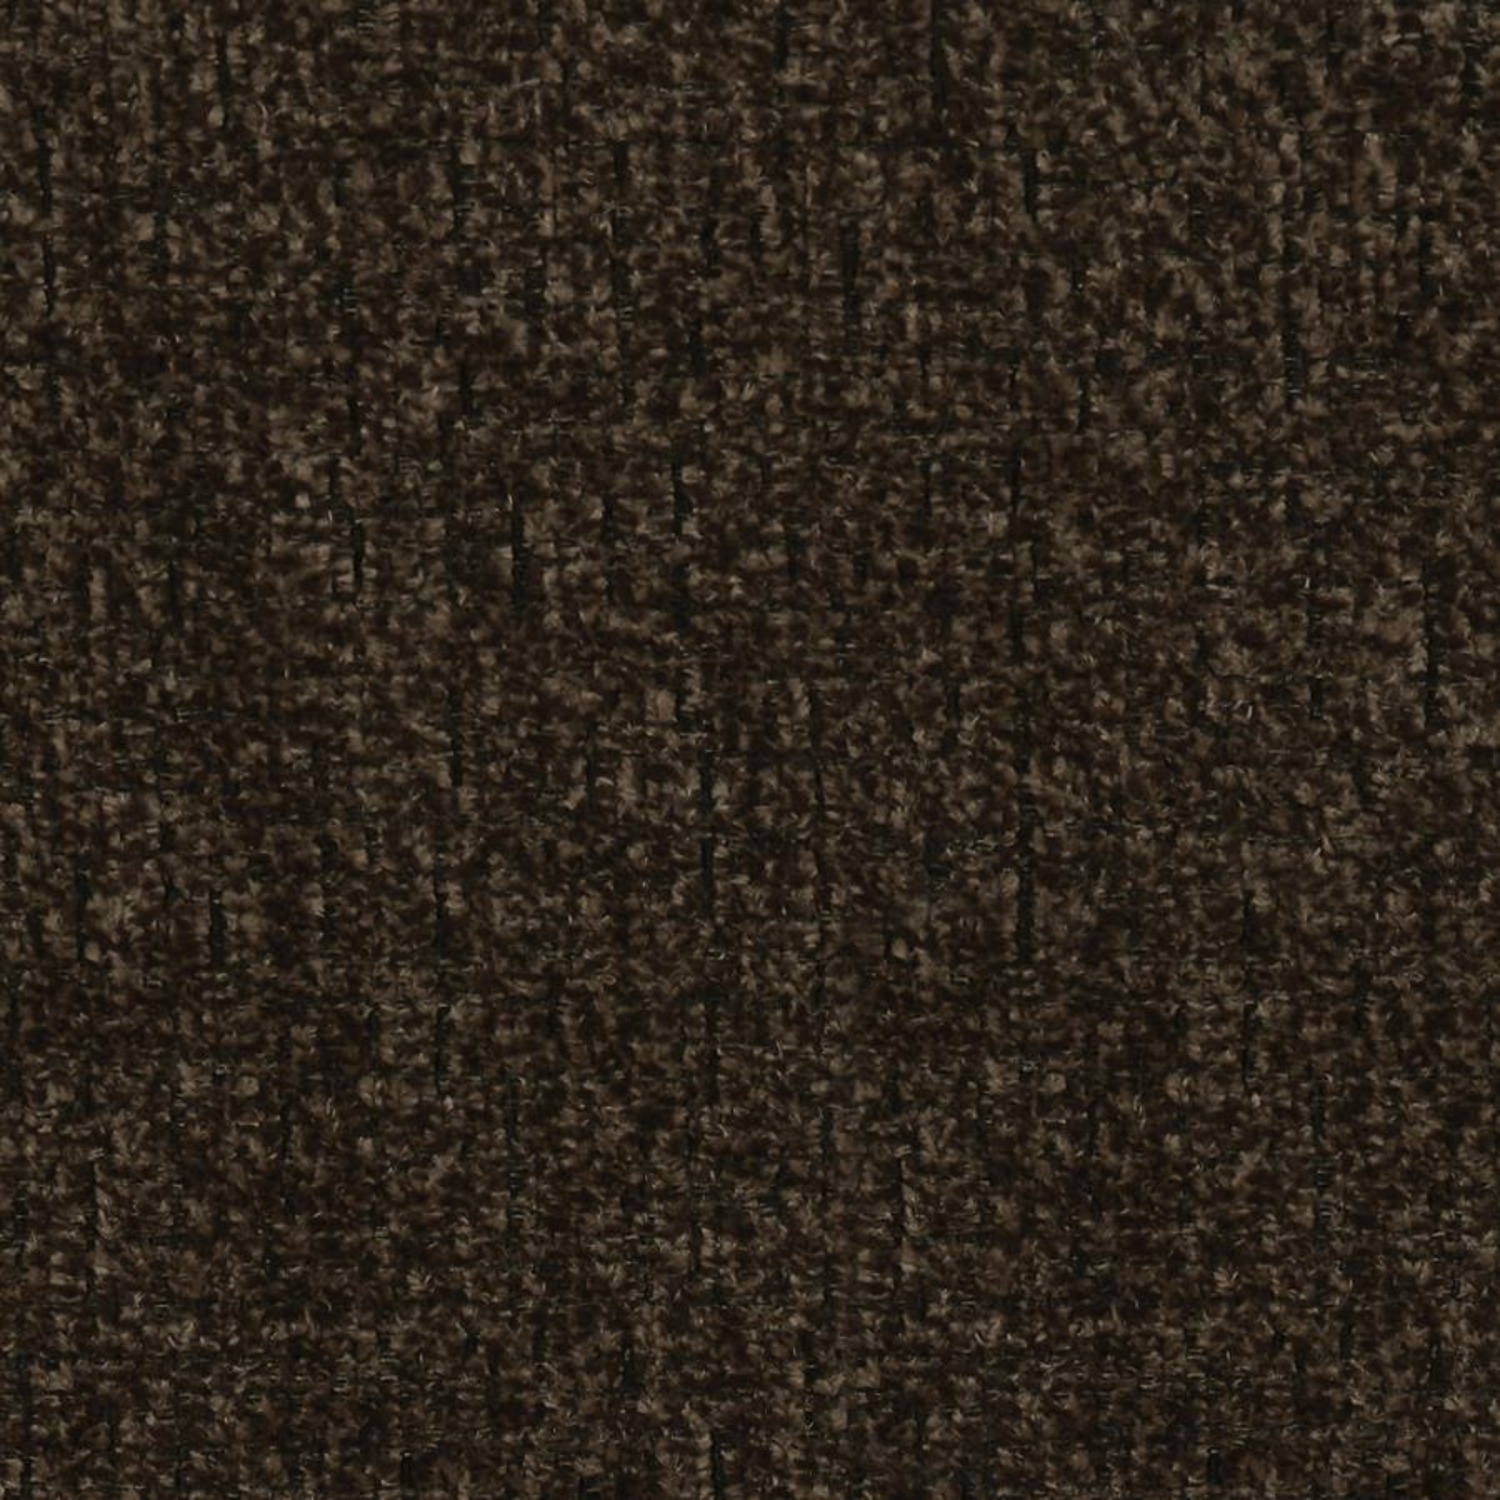 Sofa In Brown Chenille Upholstery Finish - image-5